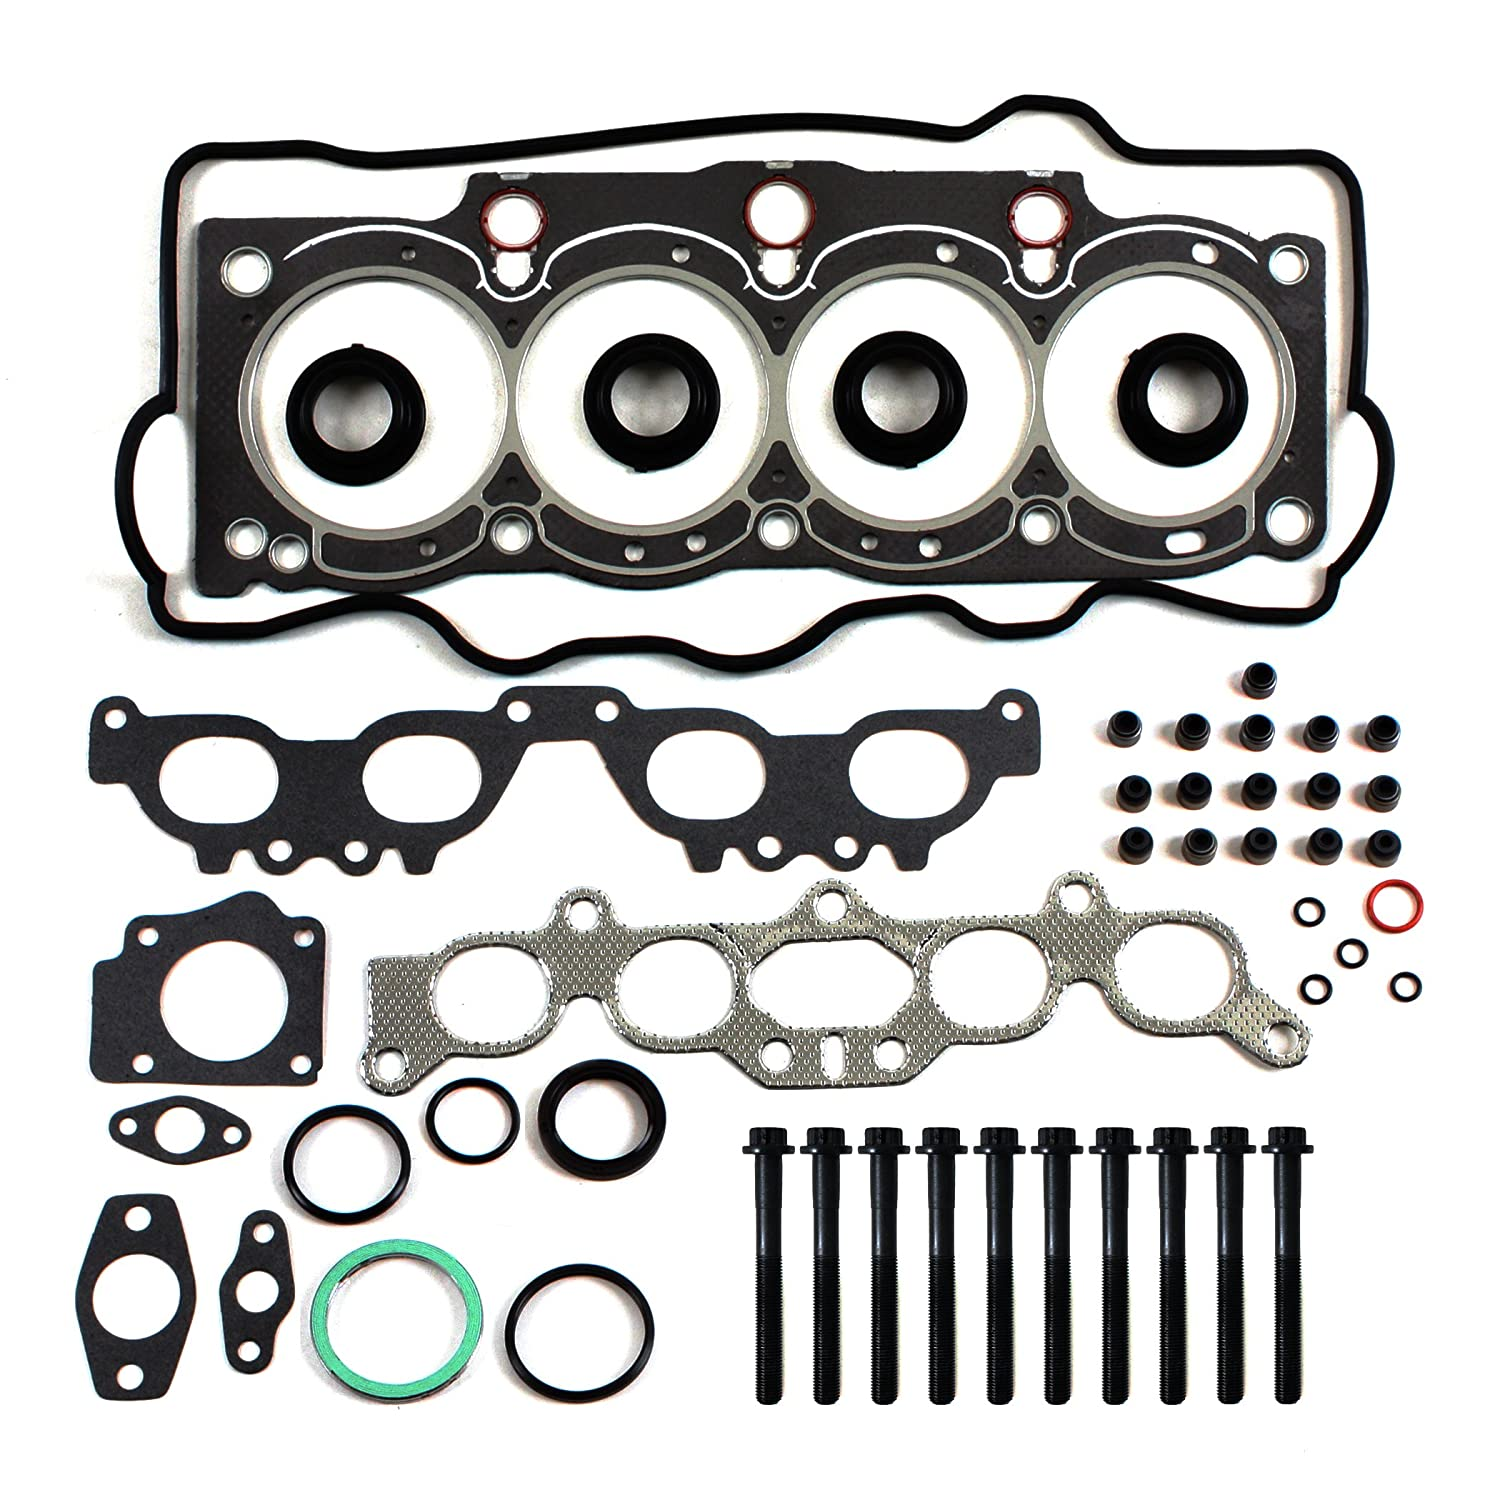 Fits 90-97 Toyota Camry MR2 2.2L 5SFE Pistons with Rings